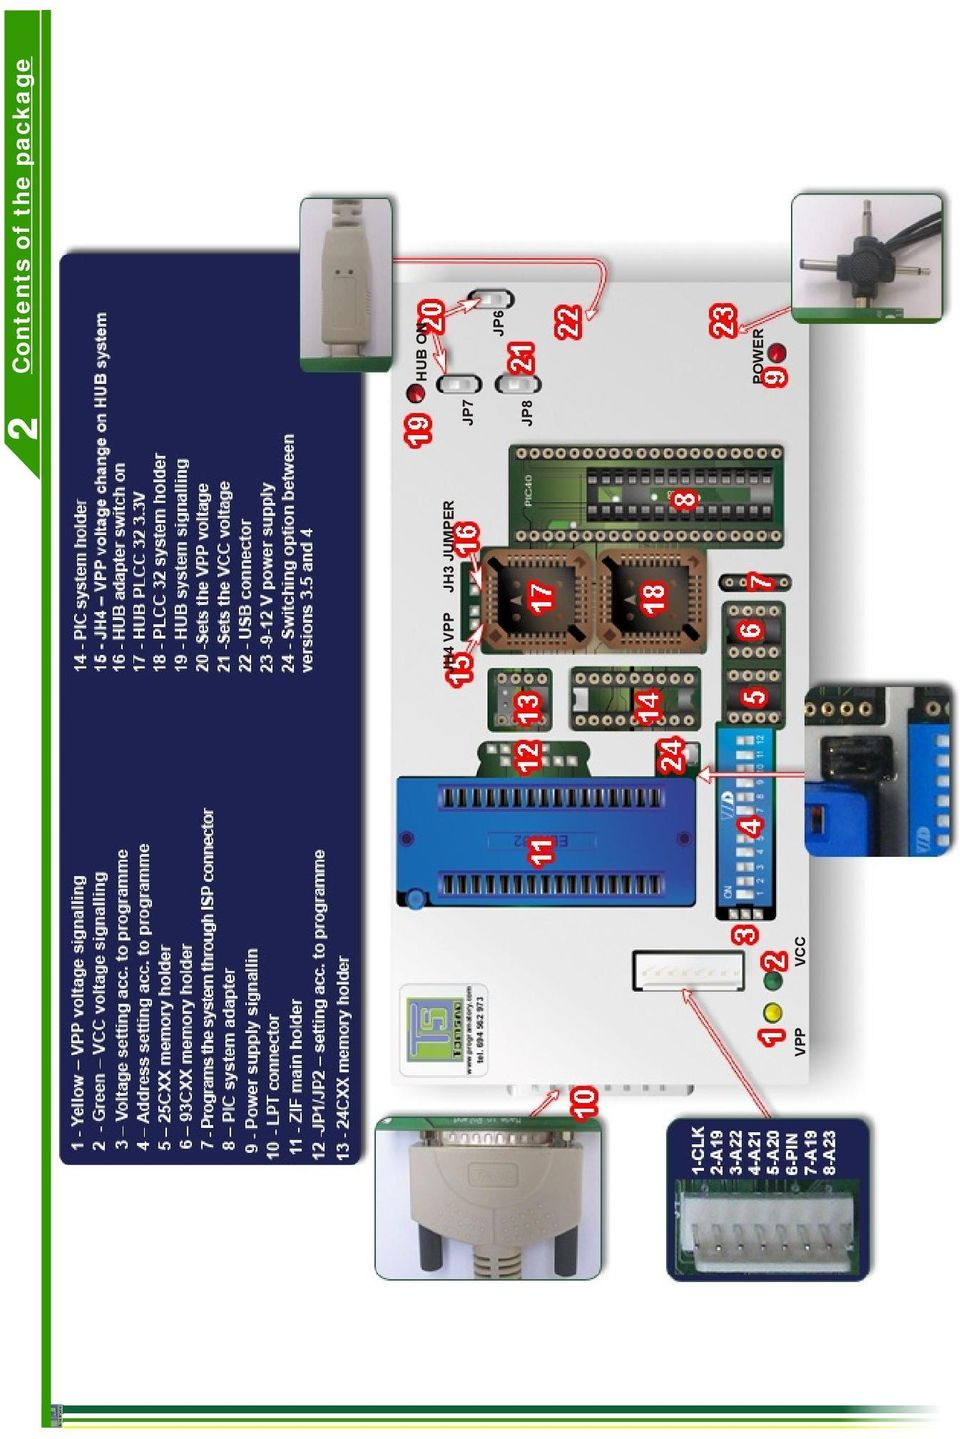 Willem Pro 2 Only Intelligent Programming Pdf Simple Alarm Circuit Using 12c509 5 Zasilanie 9 12v Lub Usb Kabel Lpt 1 Tel Contents Of The Package Wybr Napicia Vcc 50v Default 56v Programujcego Vpp 125v 15v 21v